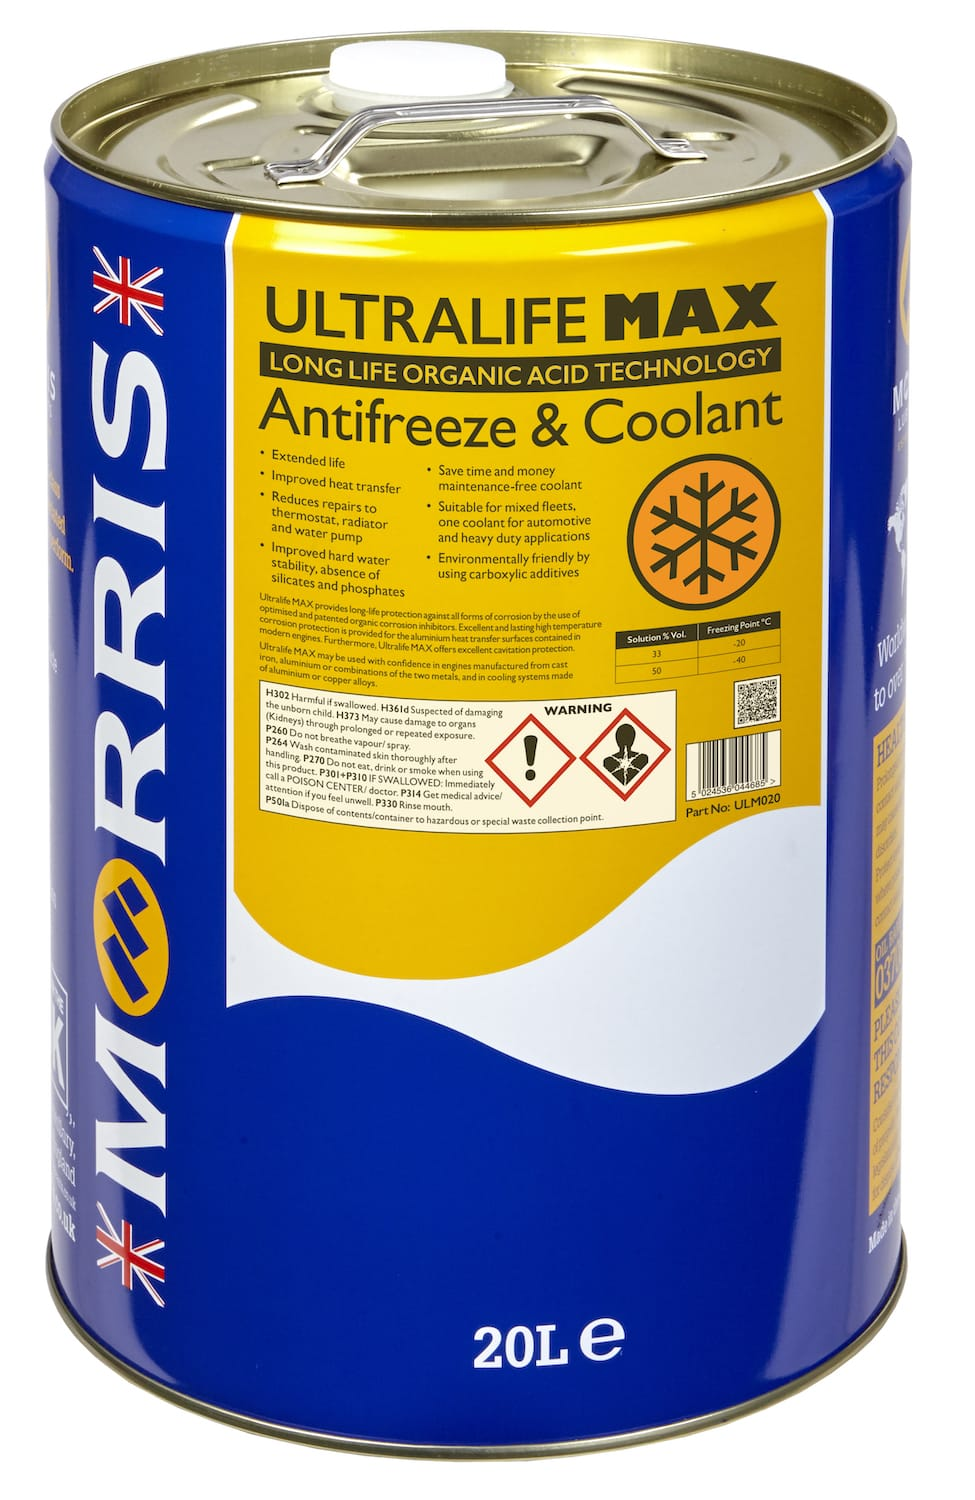 Ultralife Max Antifreeze